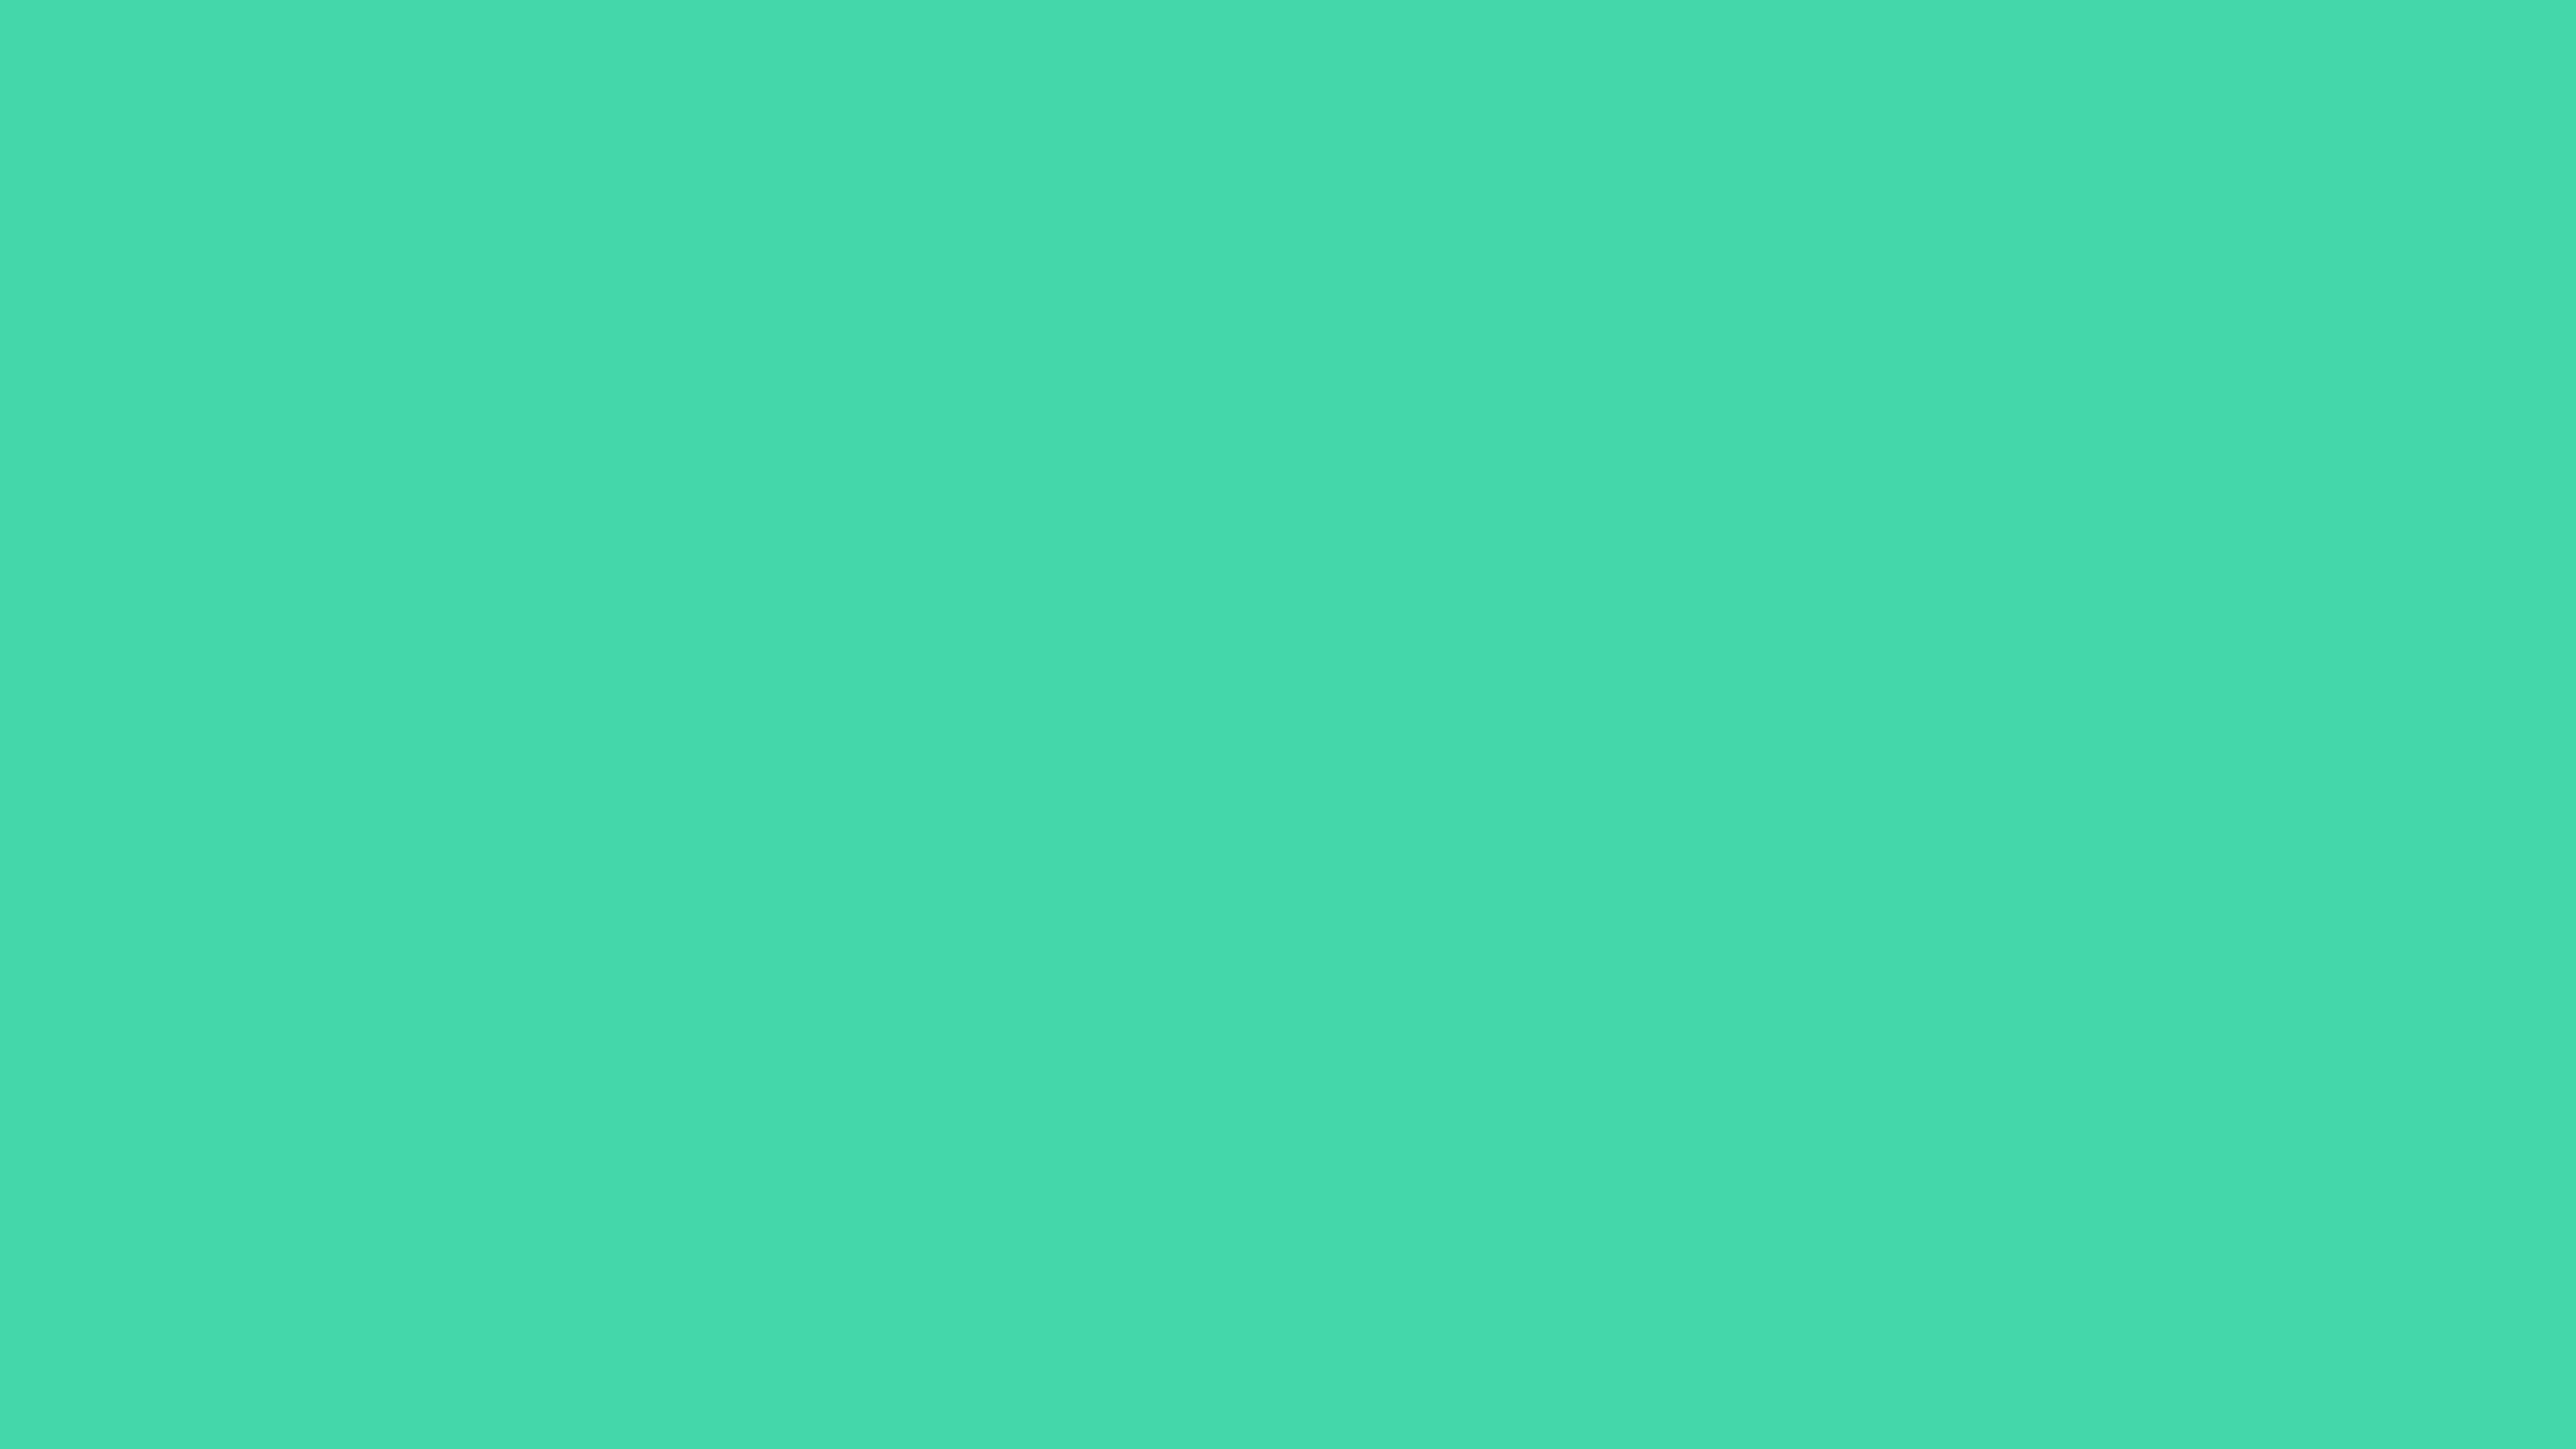 5120x2880 Eucalyptus Solid Color Background